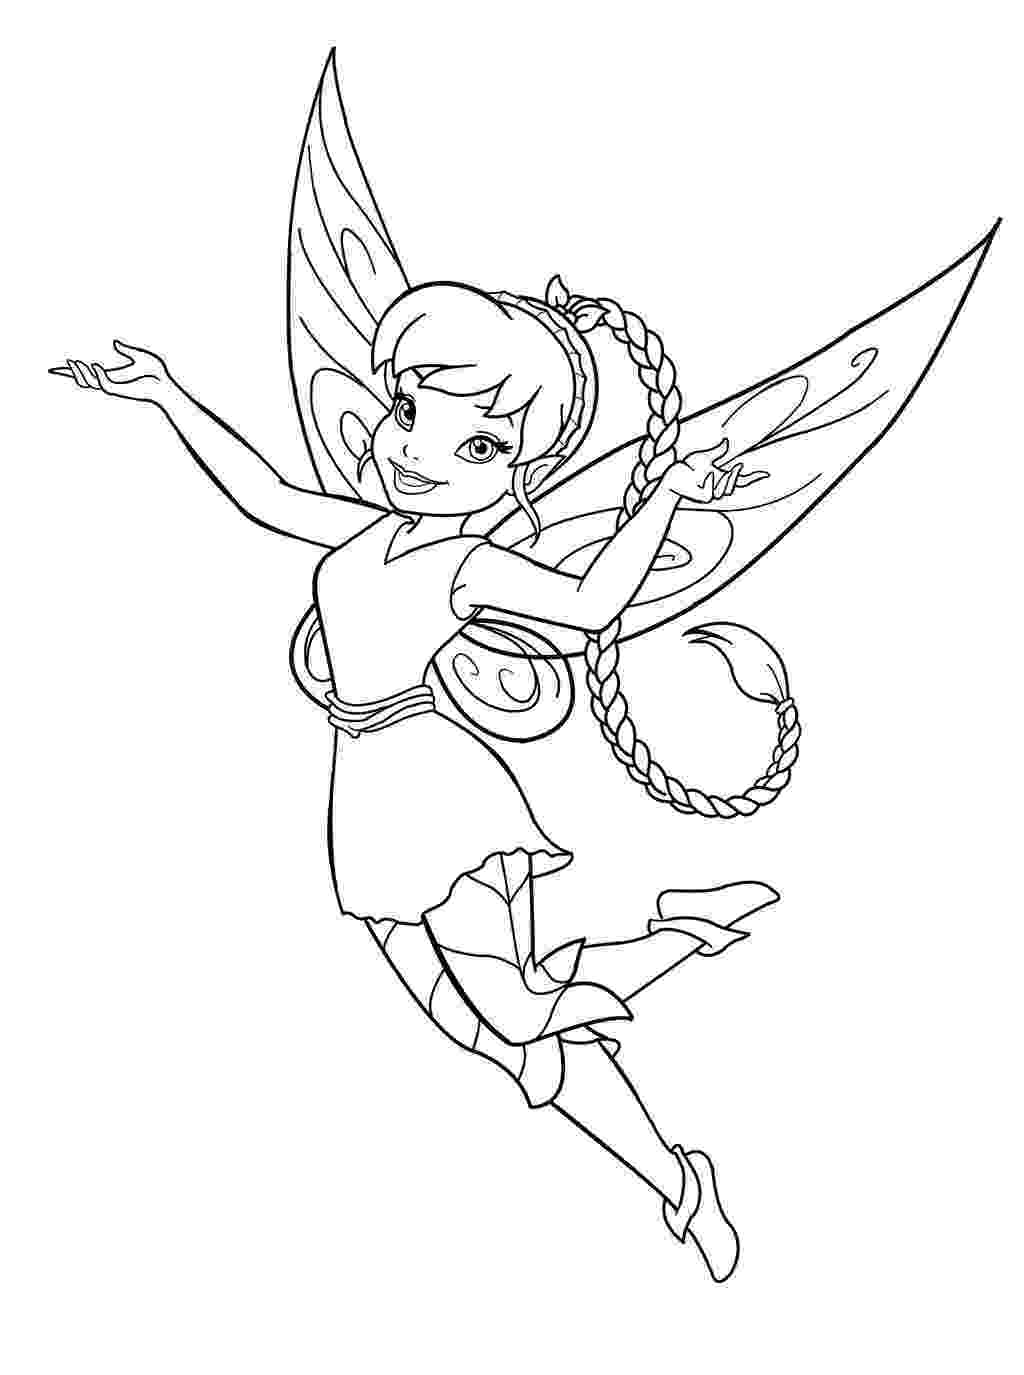 disney fairy pictures to color free printable disney fairies coloring pages for kids to disney color pictures fairy